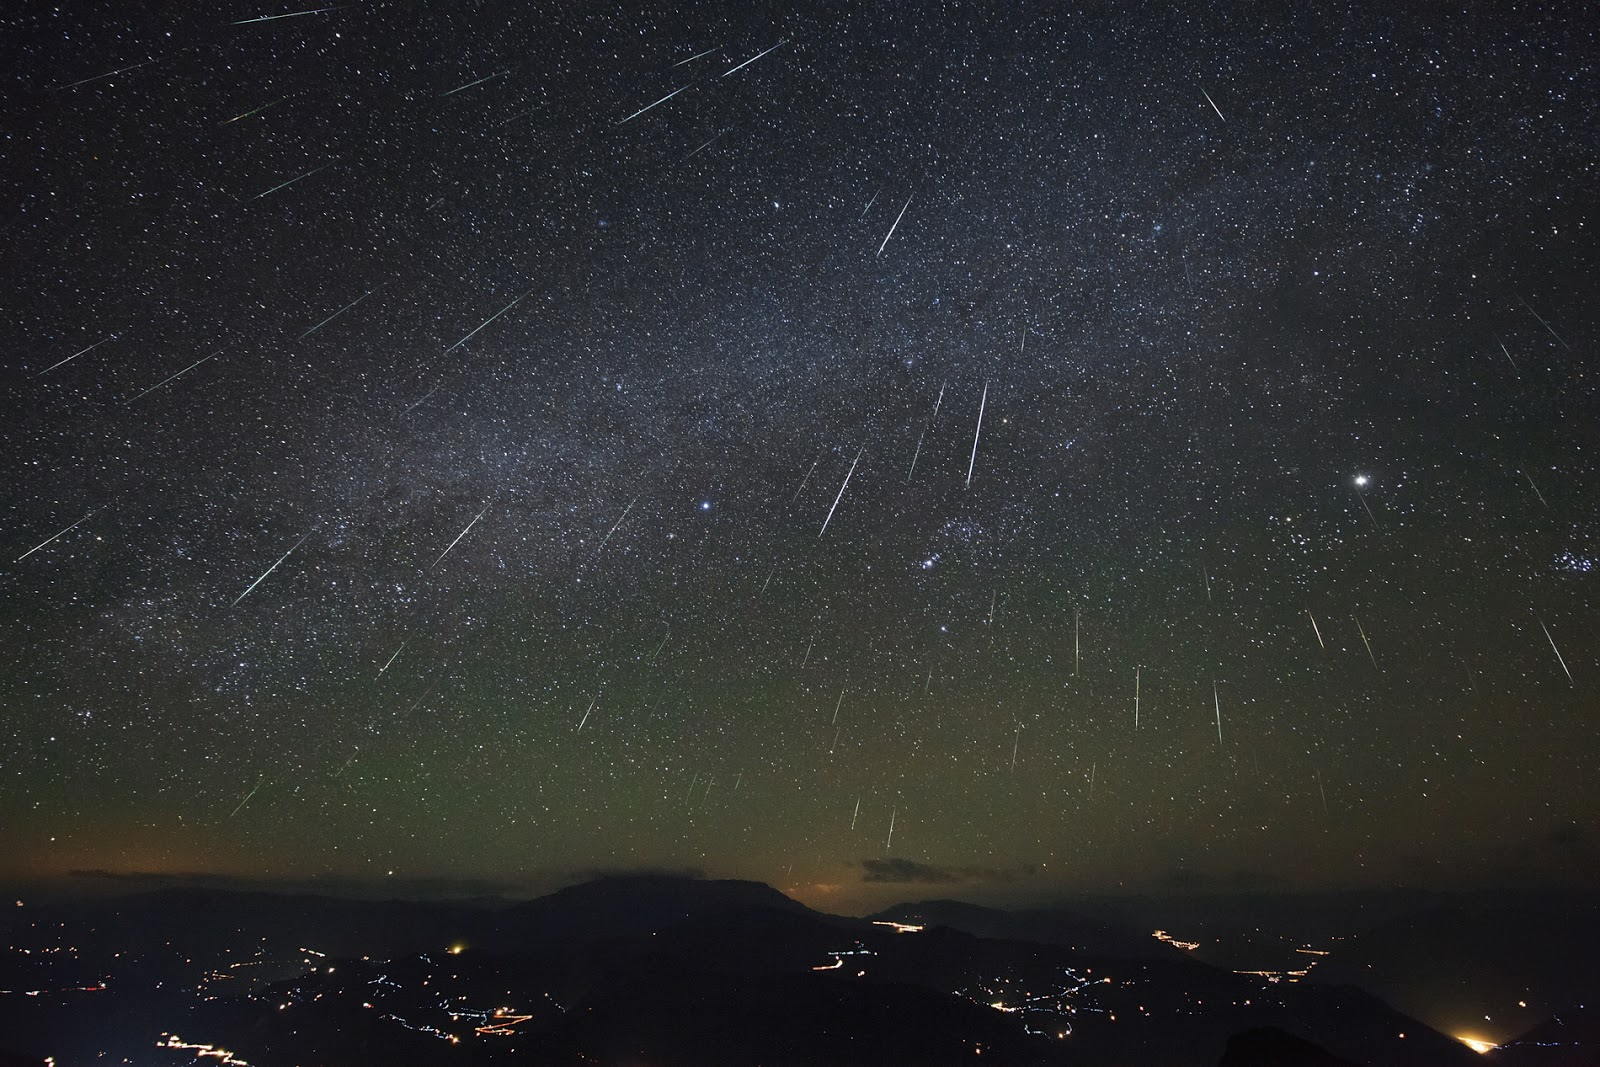 Geminid Meteors over Dashanbao Wetlands